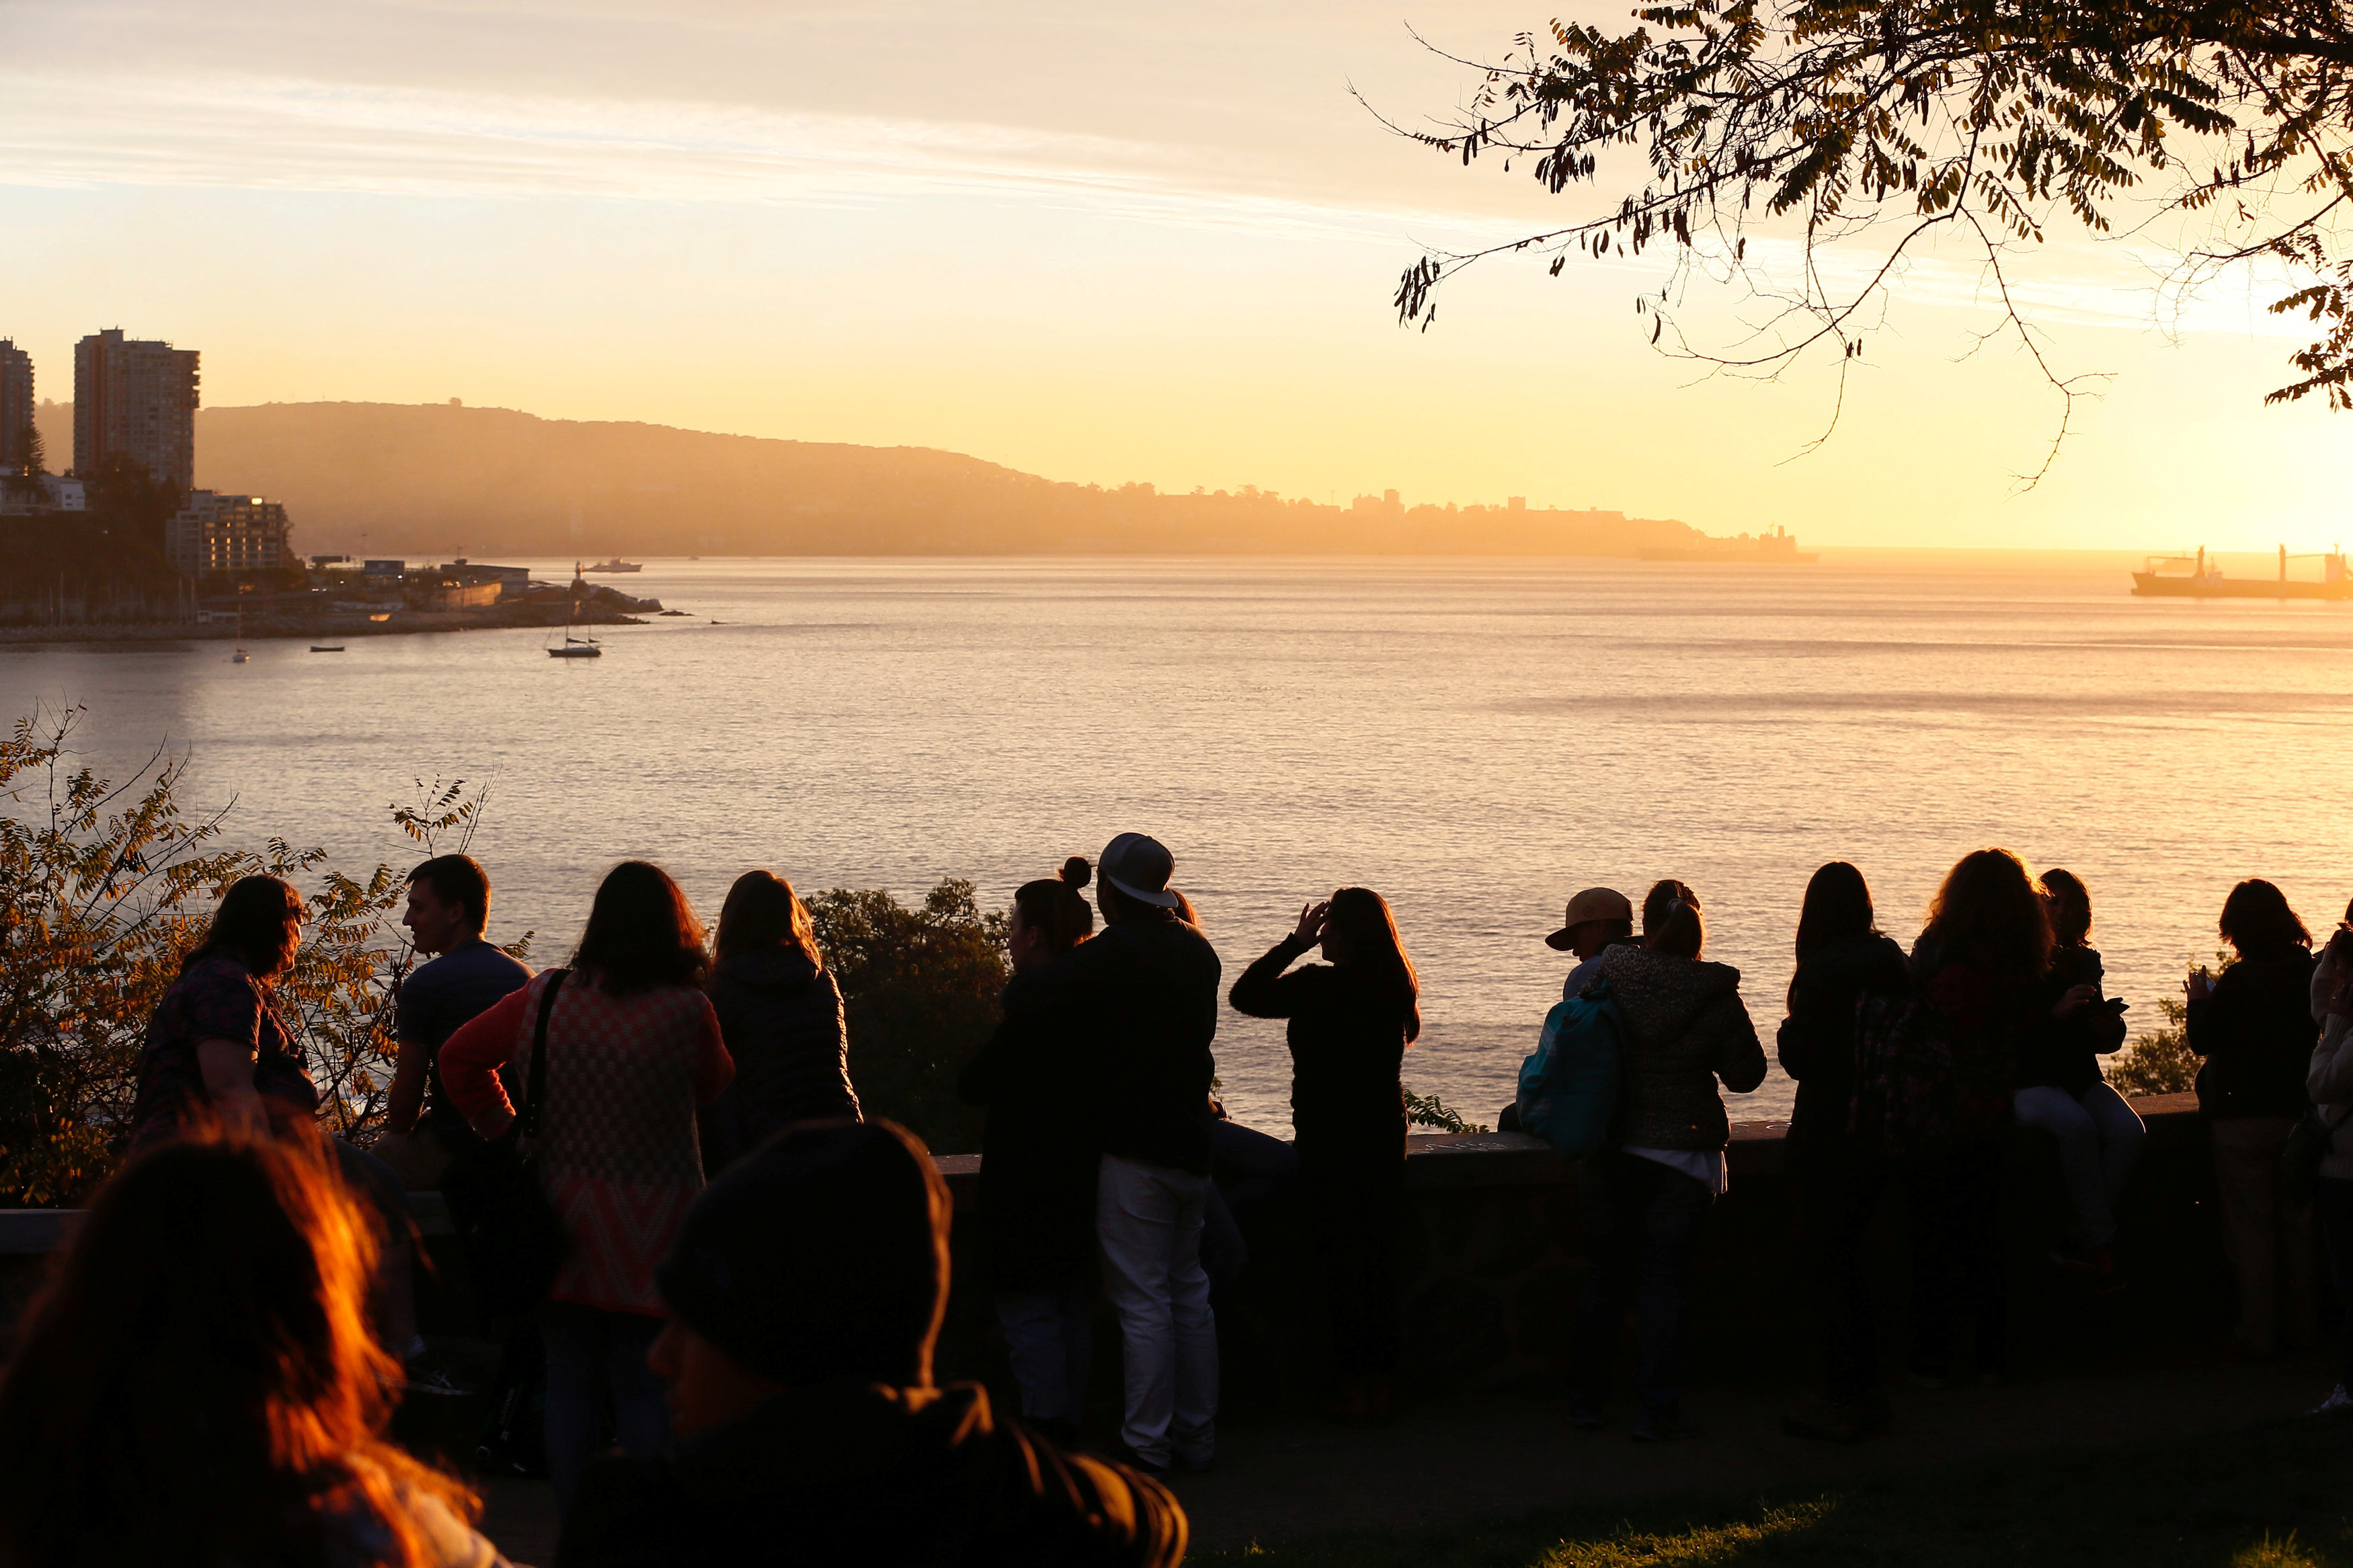 People look out towards the ocean on Cerro Castillo hill, after a mass evacuation of the entire coastline during a tsunami alert after a magnitude 7.1 earthquake hit off the coast in Vina del Mar, Chile April 24, 2017.